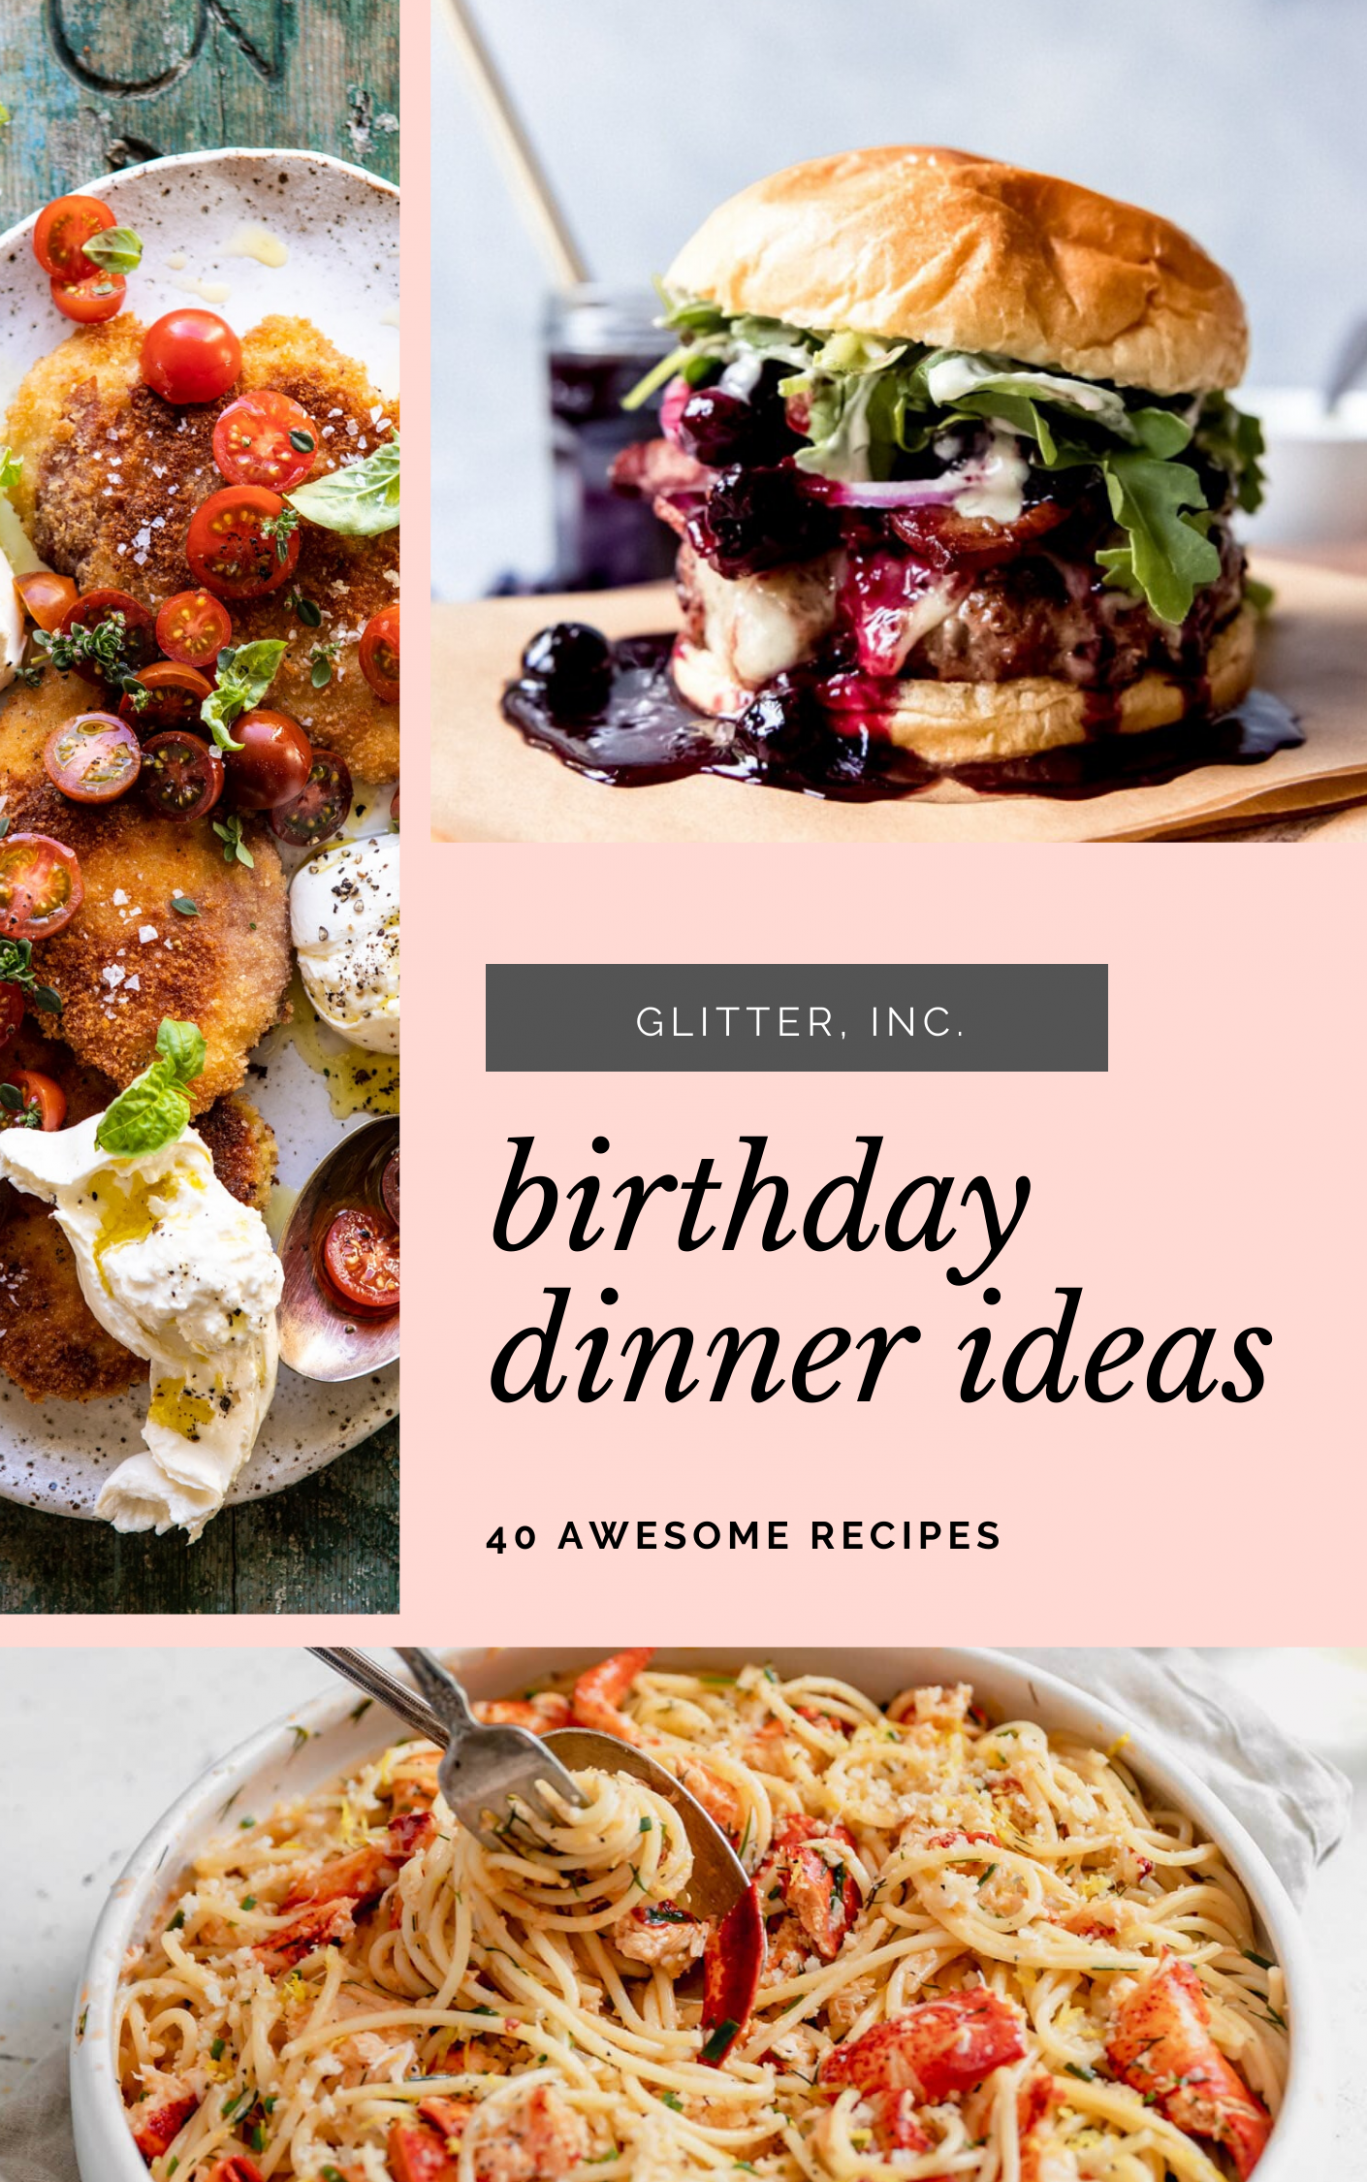 10 Birthday Dinner Ideas At Home | Glitter, Inc